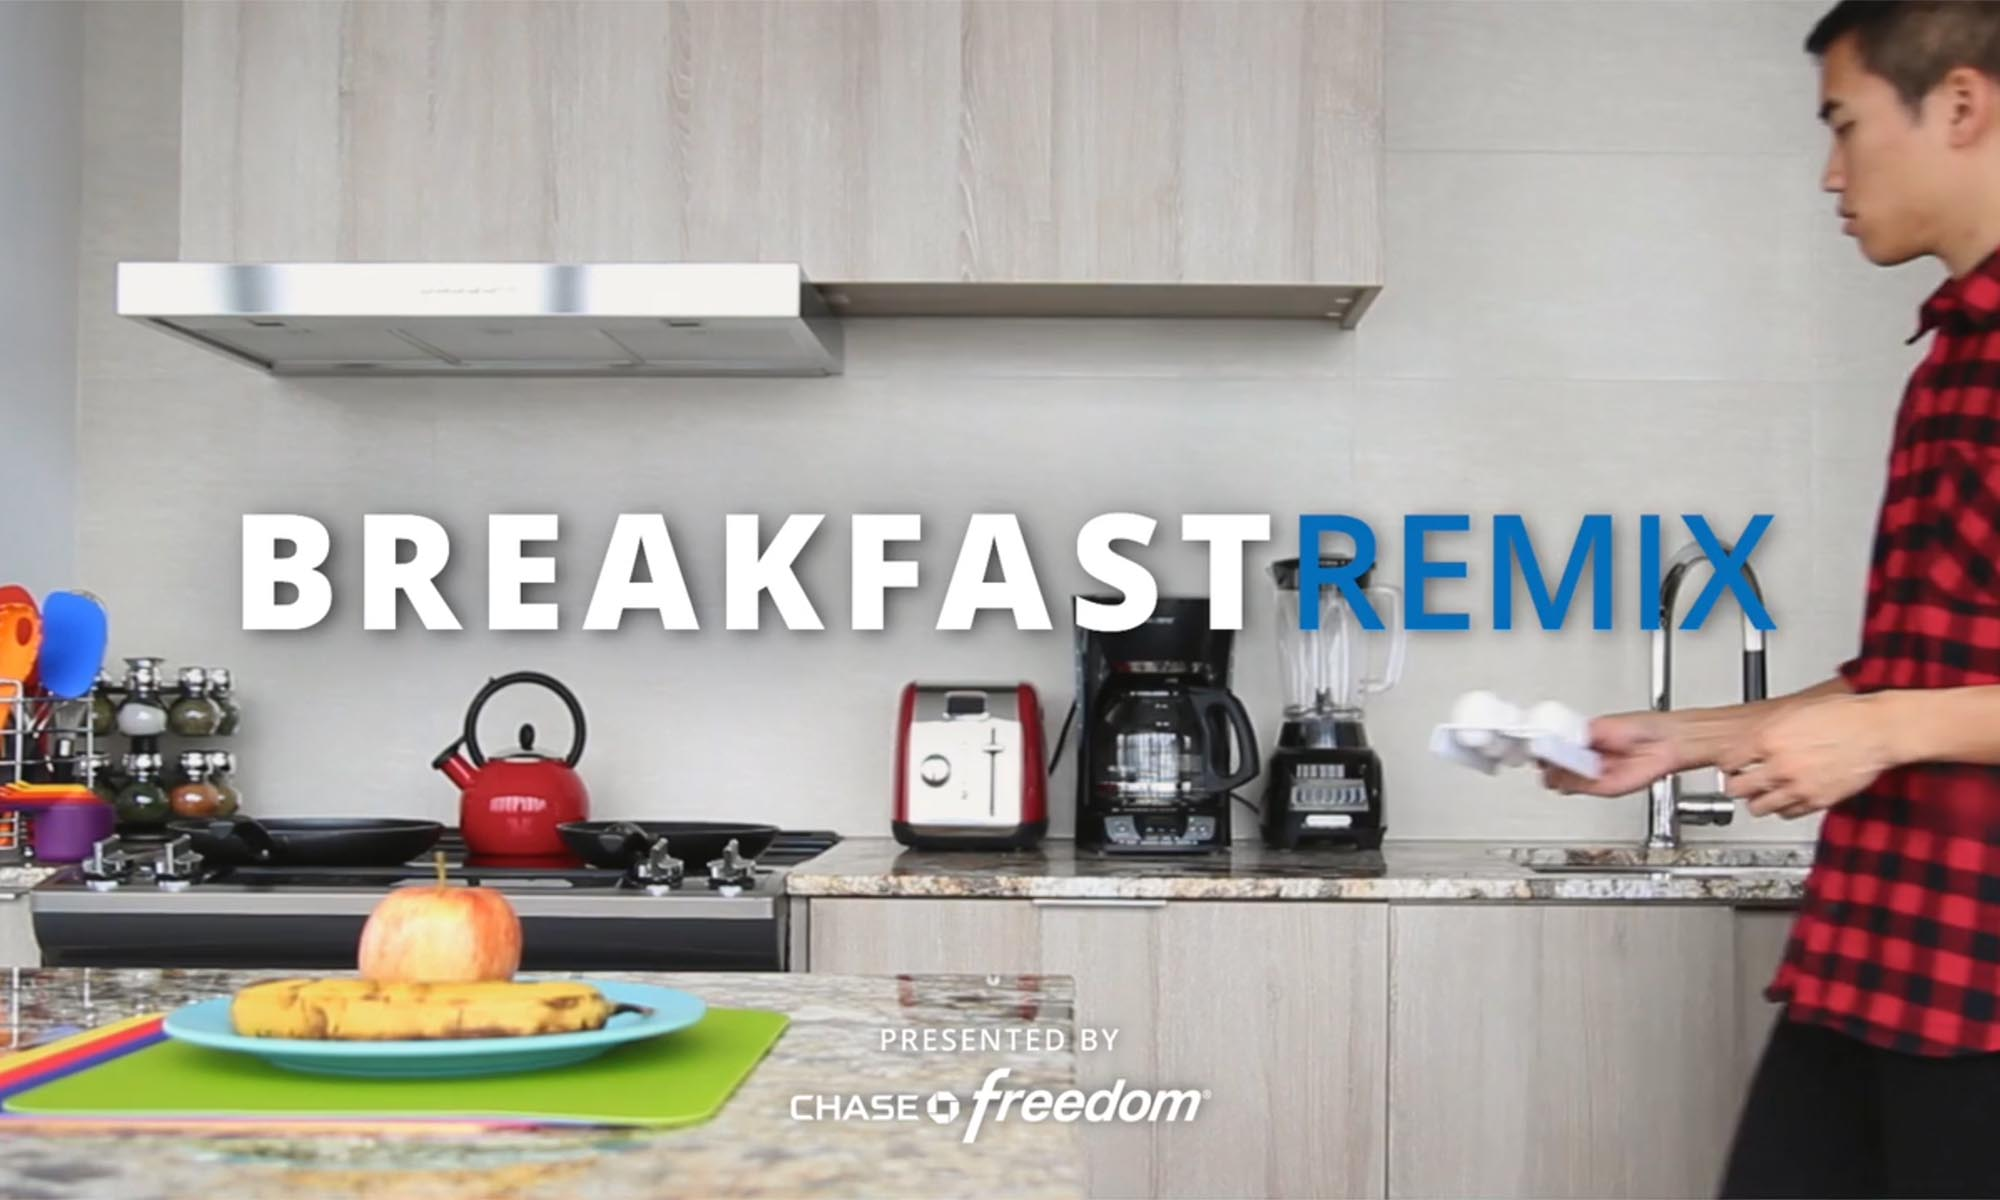 Chase Freedom Breakfast Remix Video